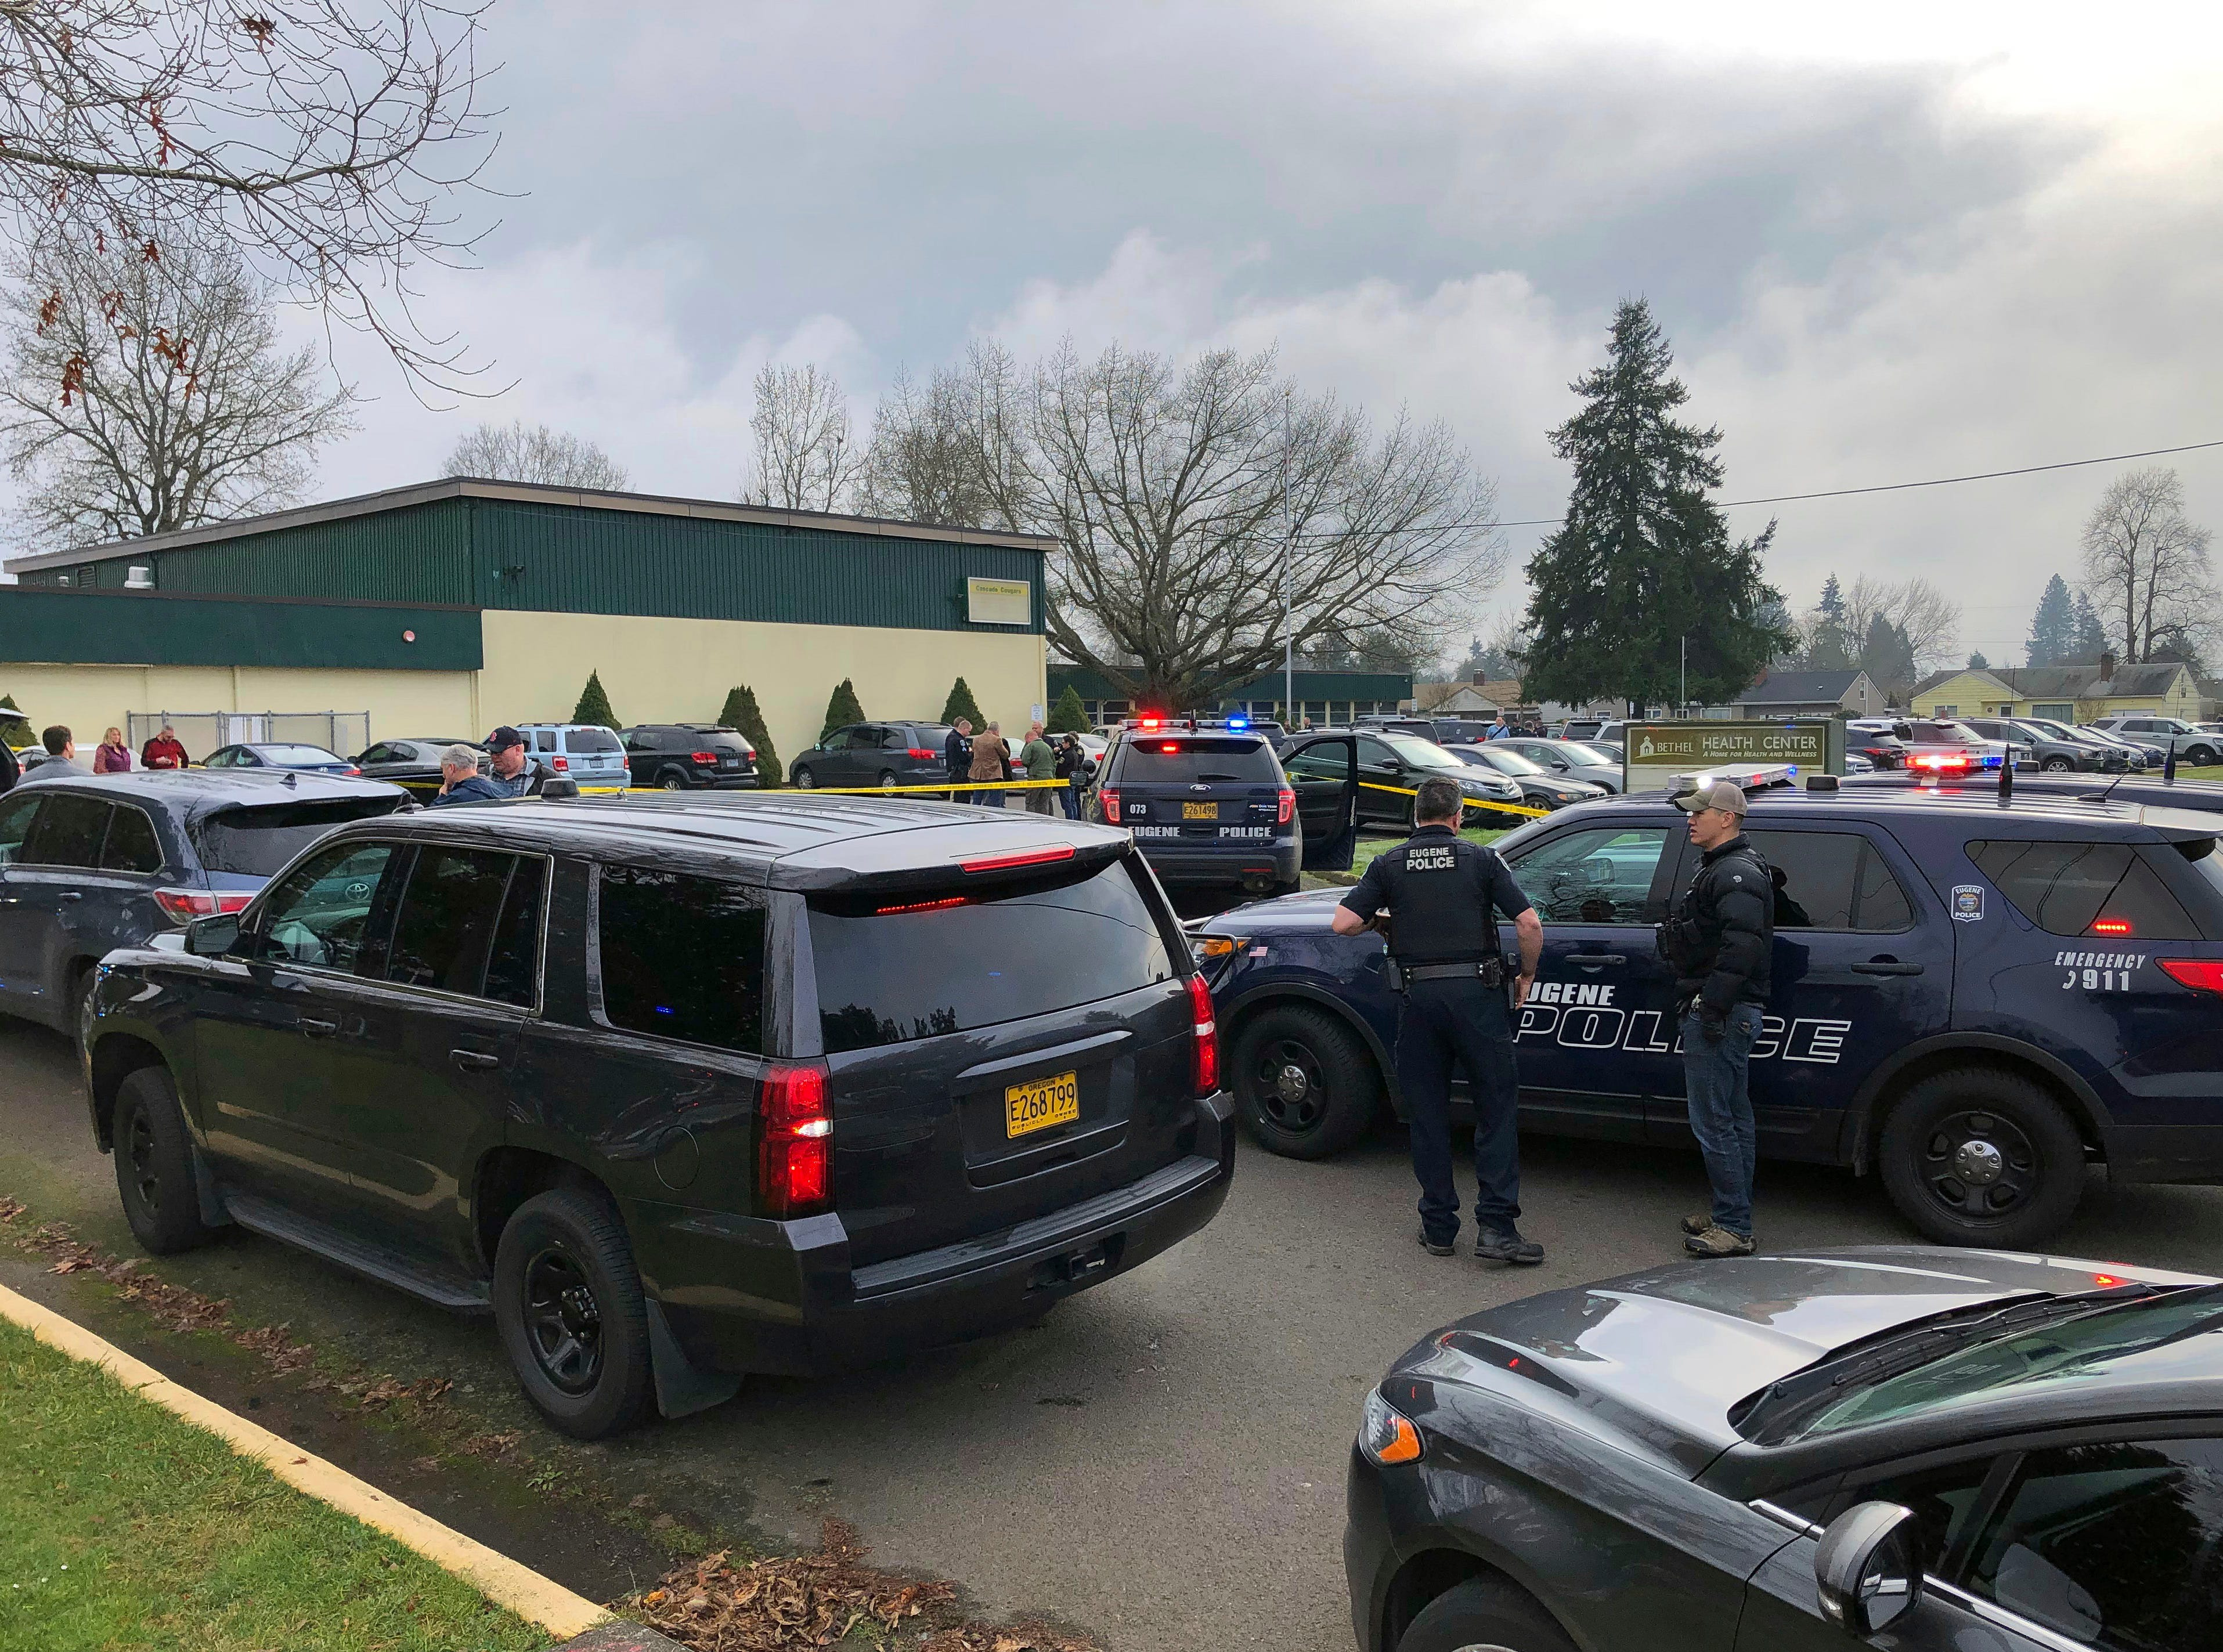 Police officers work the scene where a suspect was shot at a Cascade Middle School in Eugene, Ore, on Friday, Jan. 11, 2019.